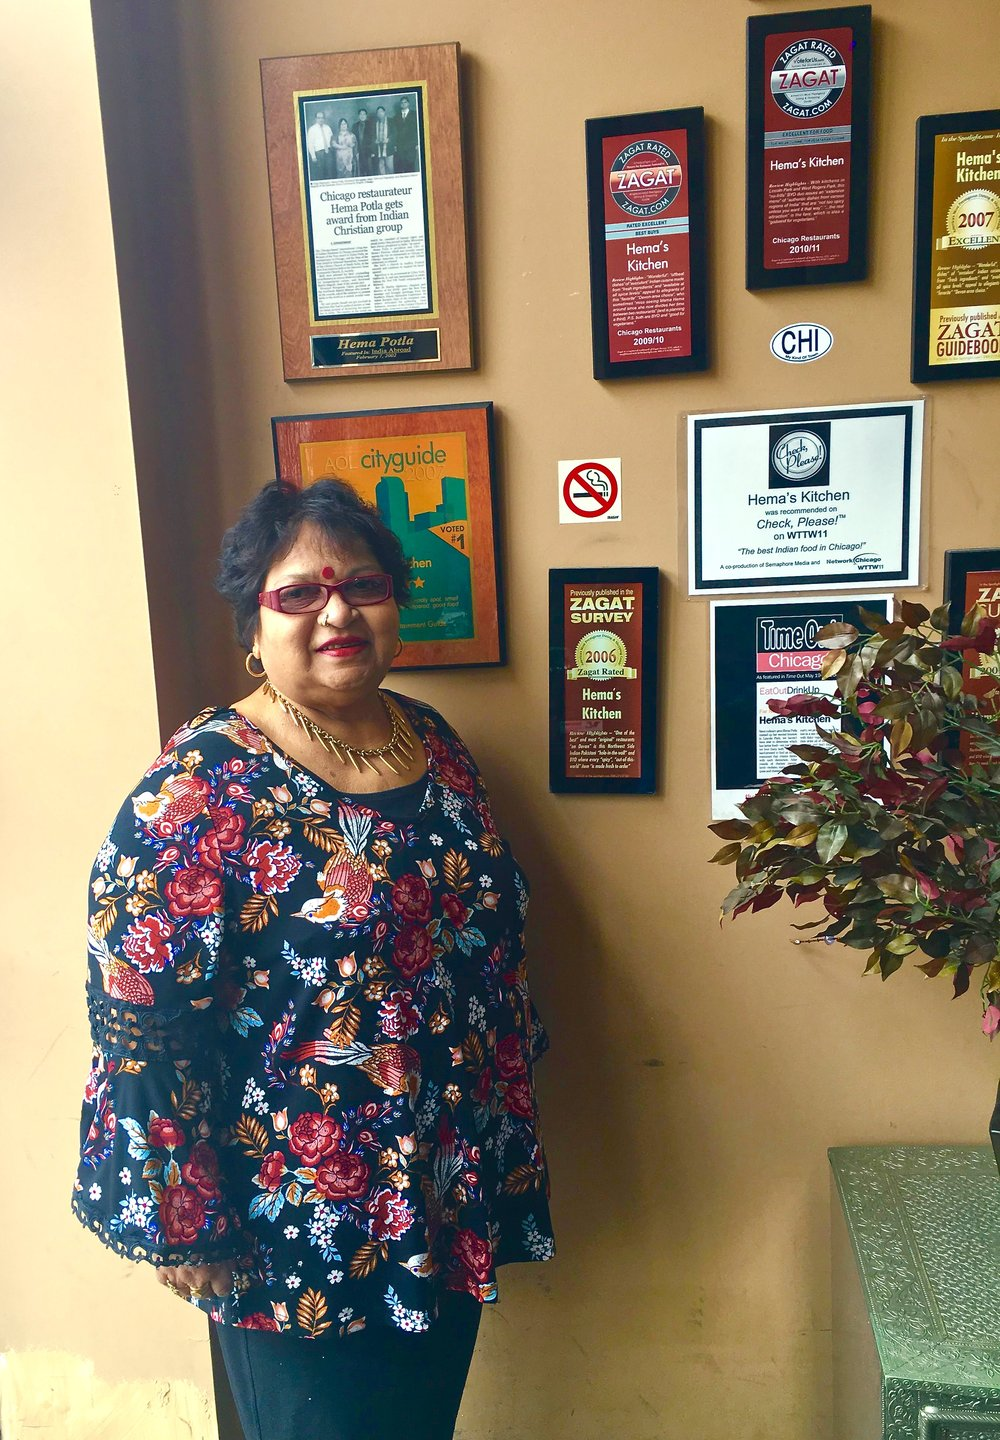 Hema Potla, women owned Indian food restaurant